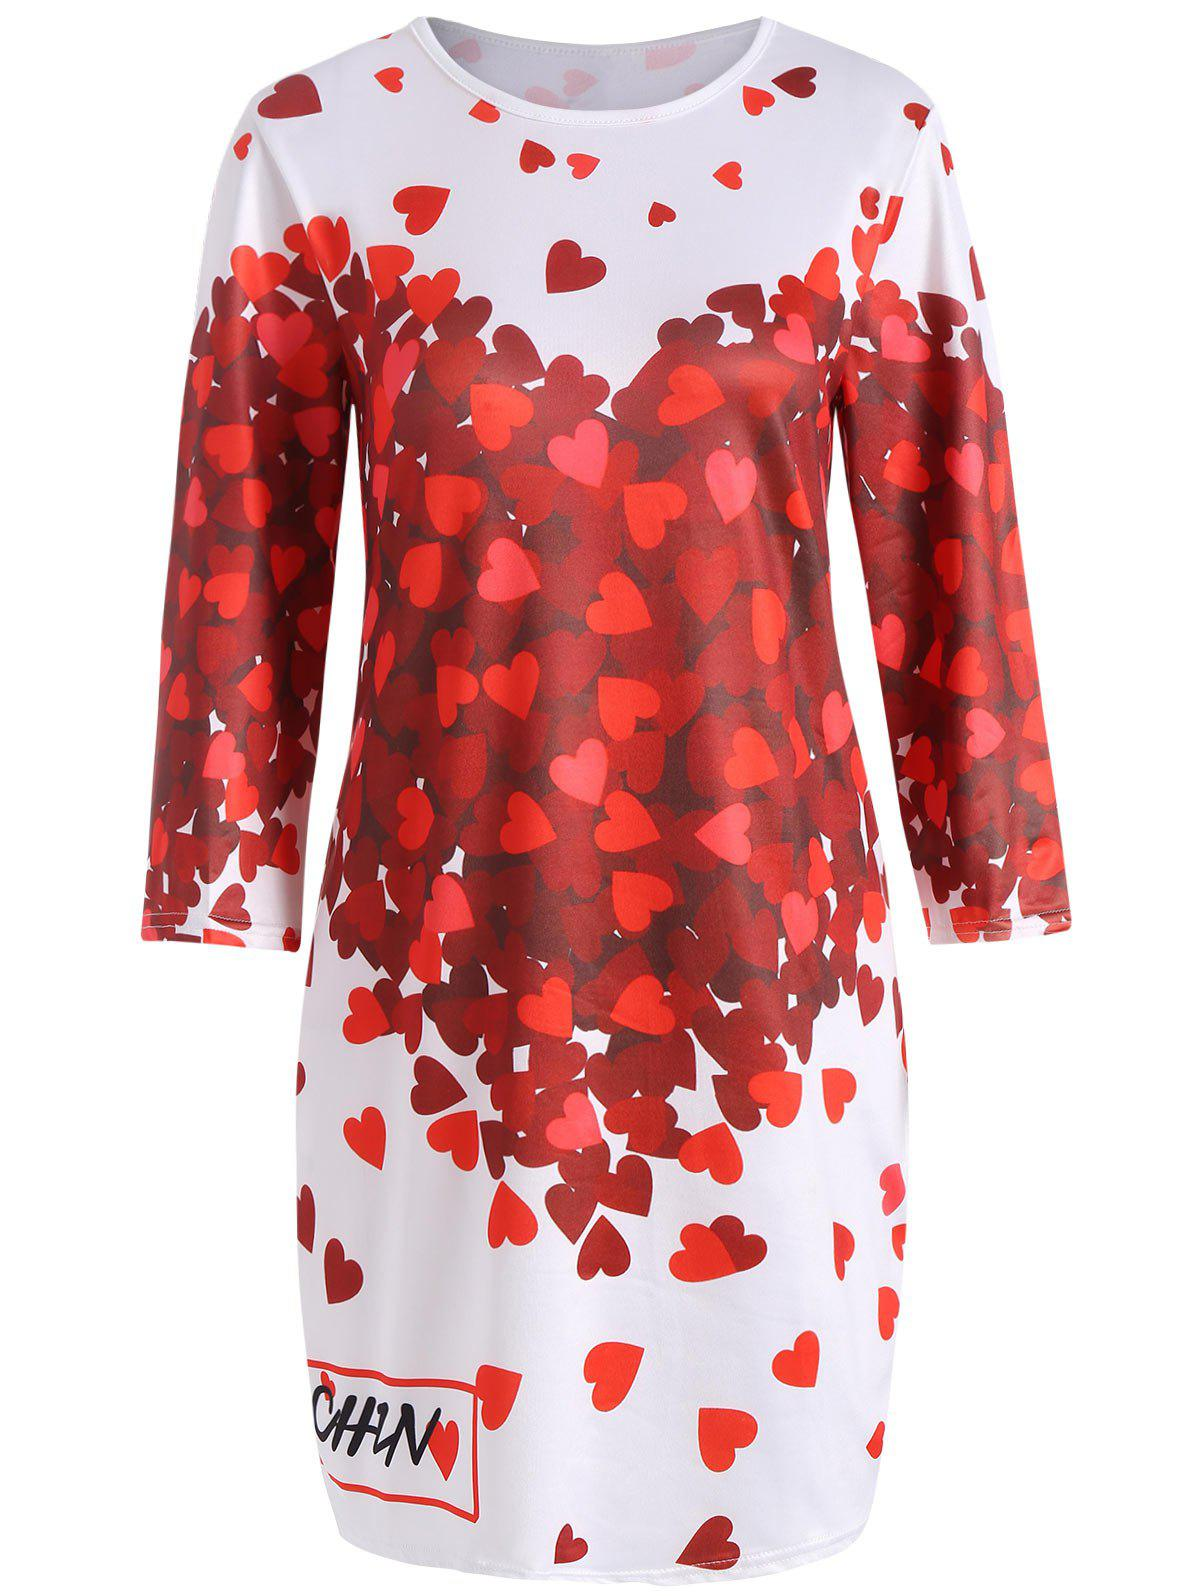 Best Endearing 3/4 Sleeve Hearts Printed Bodycon Mini Dress For Women